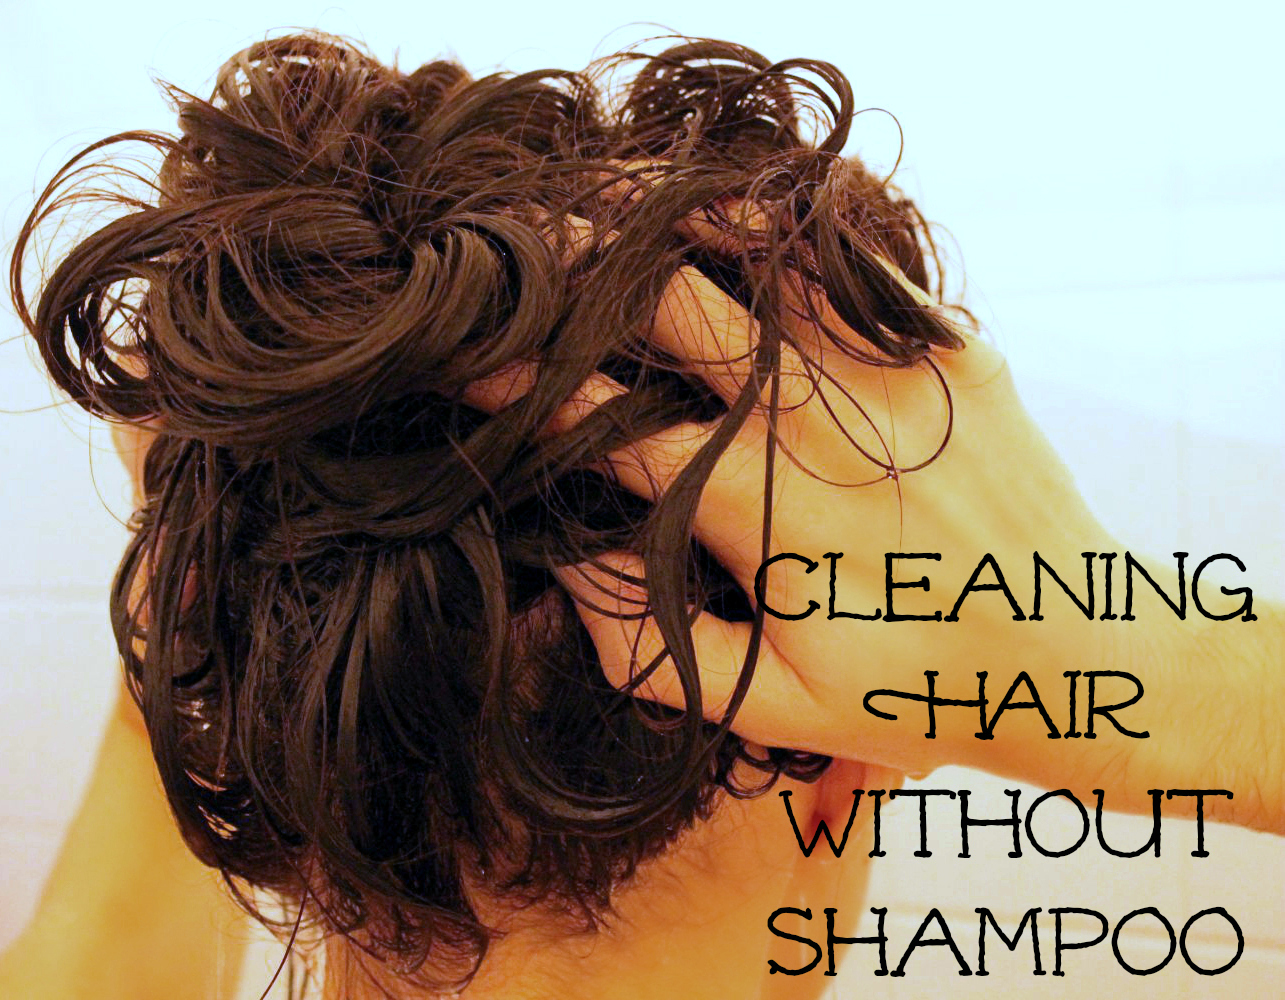 how to clean scalp without shampoo